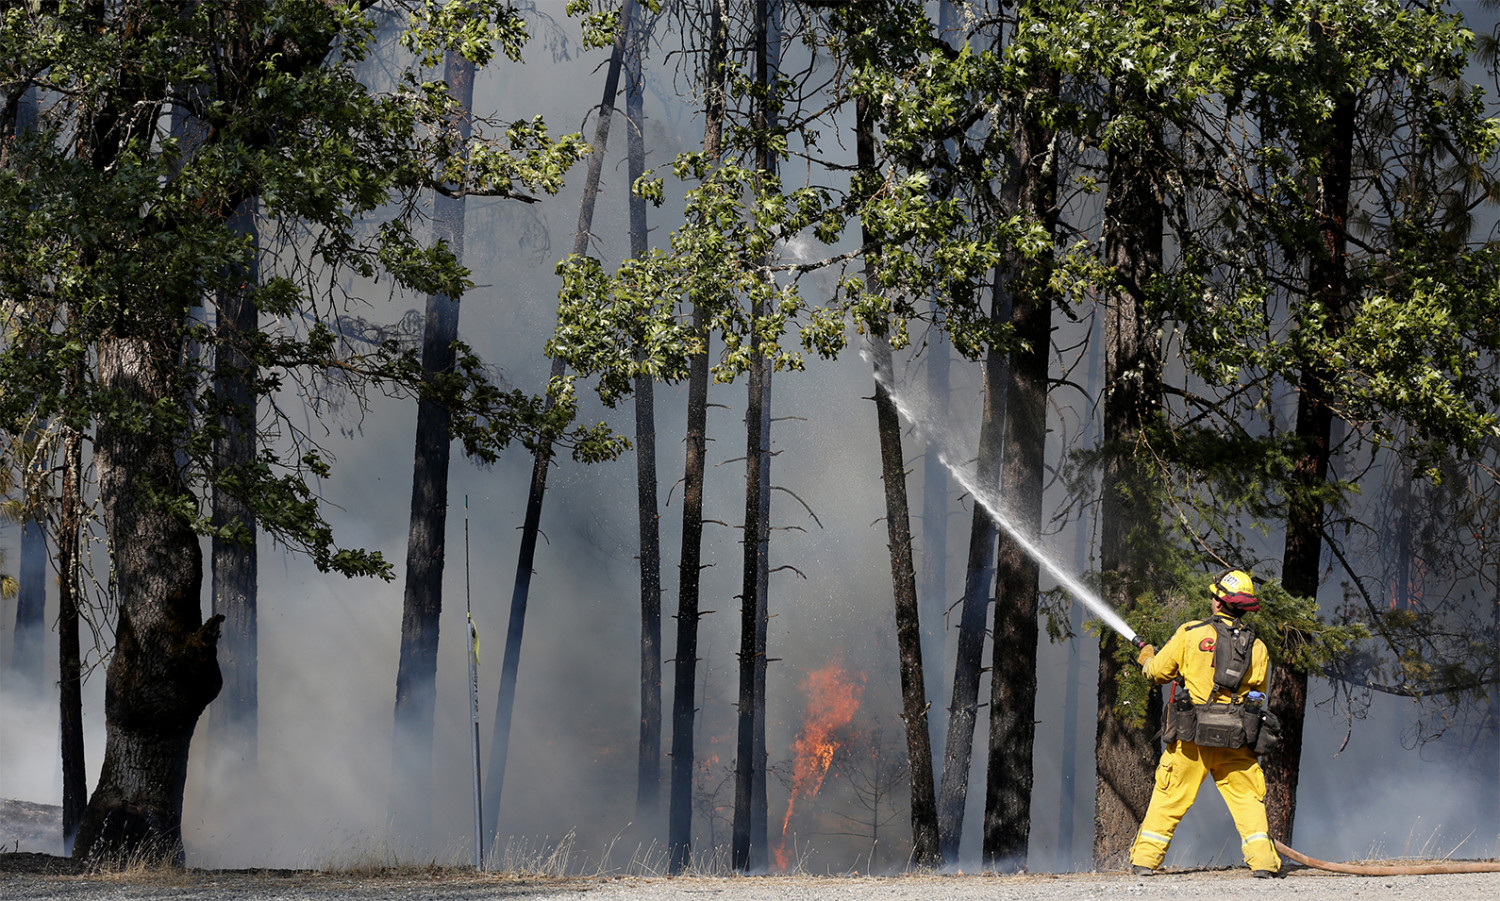 Firefighter Derek Longoria, of CalFire's Shasta-Trinity Unit, extinguishes flames near State Highway 299 while battling the Carr Fire near Redding, California on July 30, 2018. (Terray Sylvester/Getty Images)